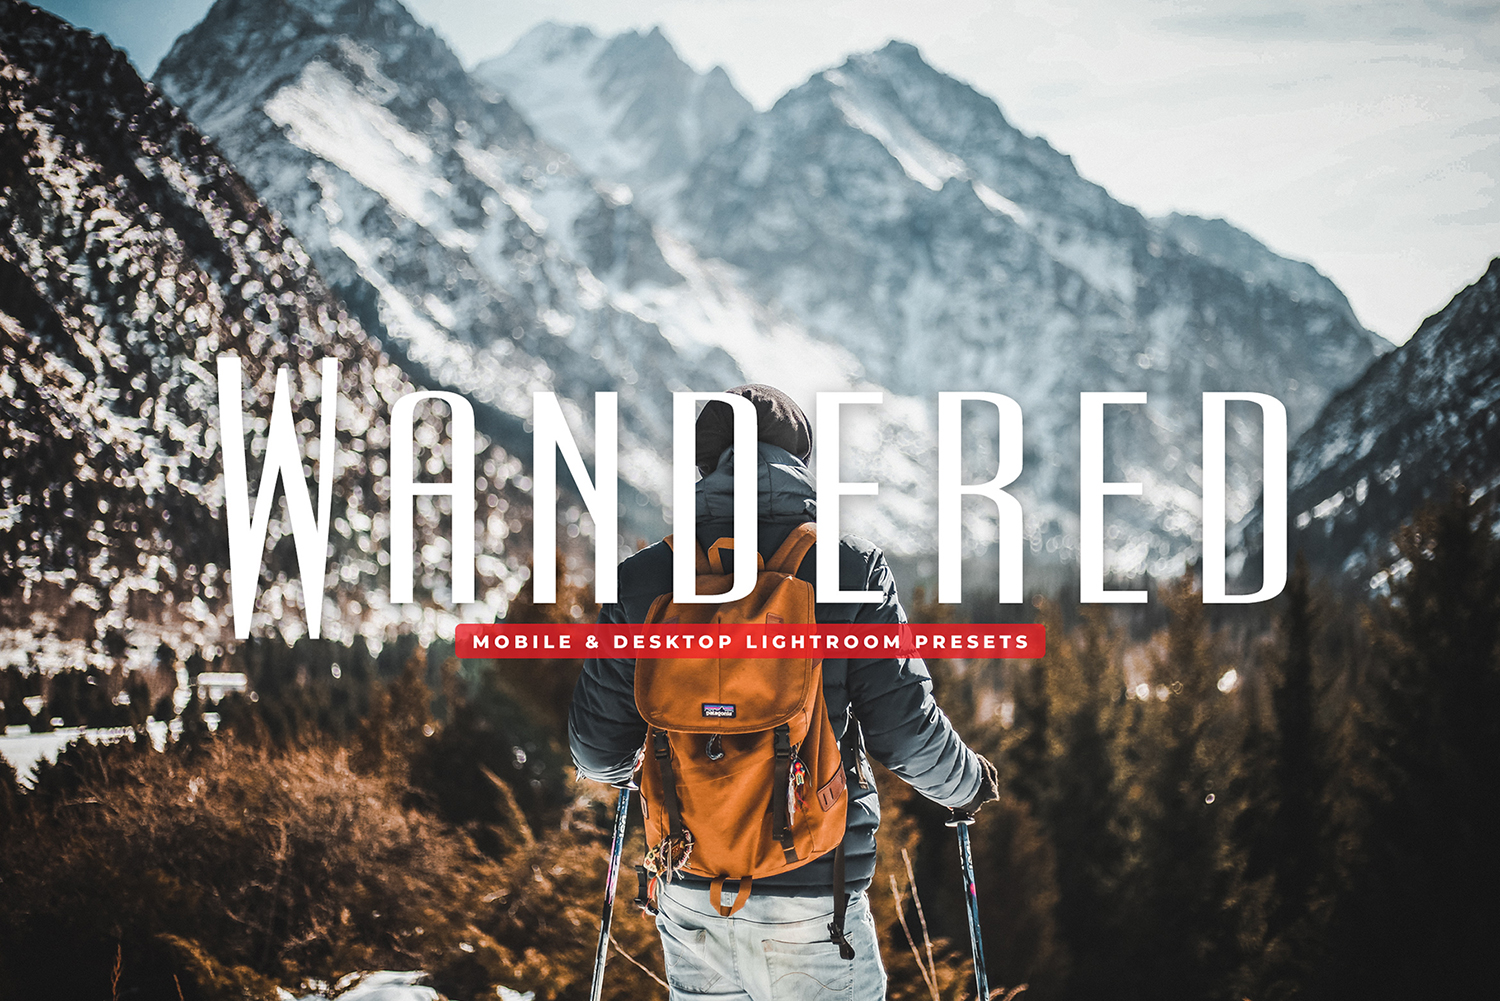 Download Free Wandered Lightroom Presets Pack Graphic By Creative Tacos for Cricut Explore, Silhouette and other cutting machines.